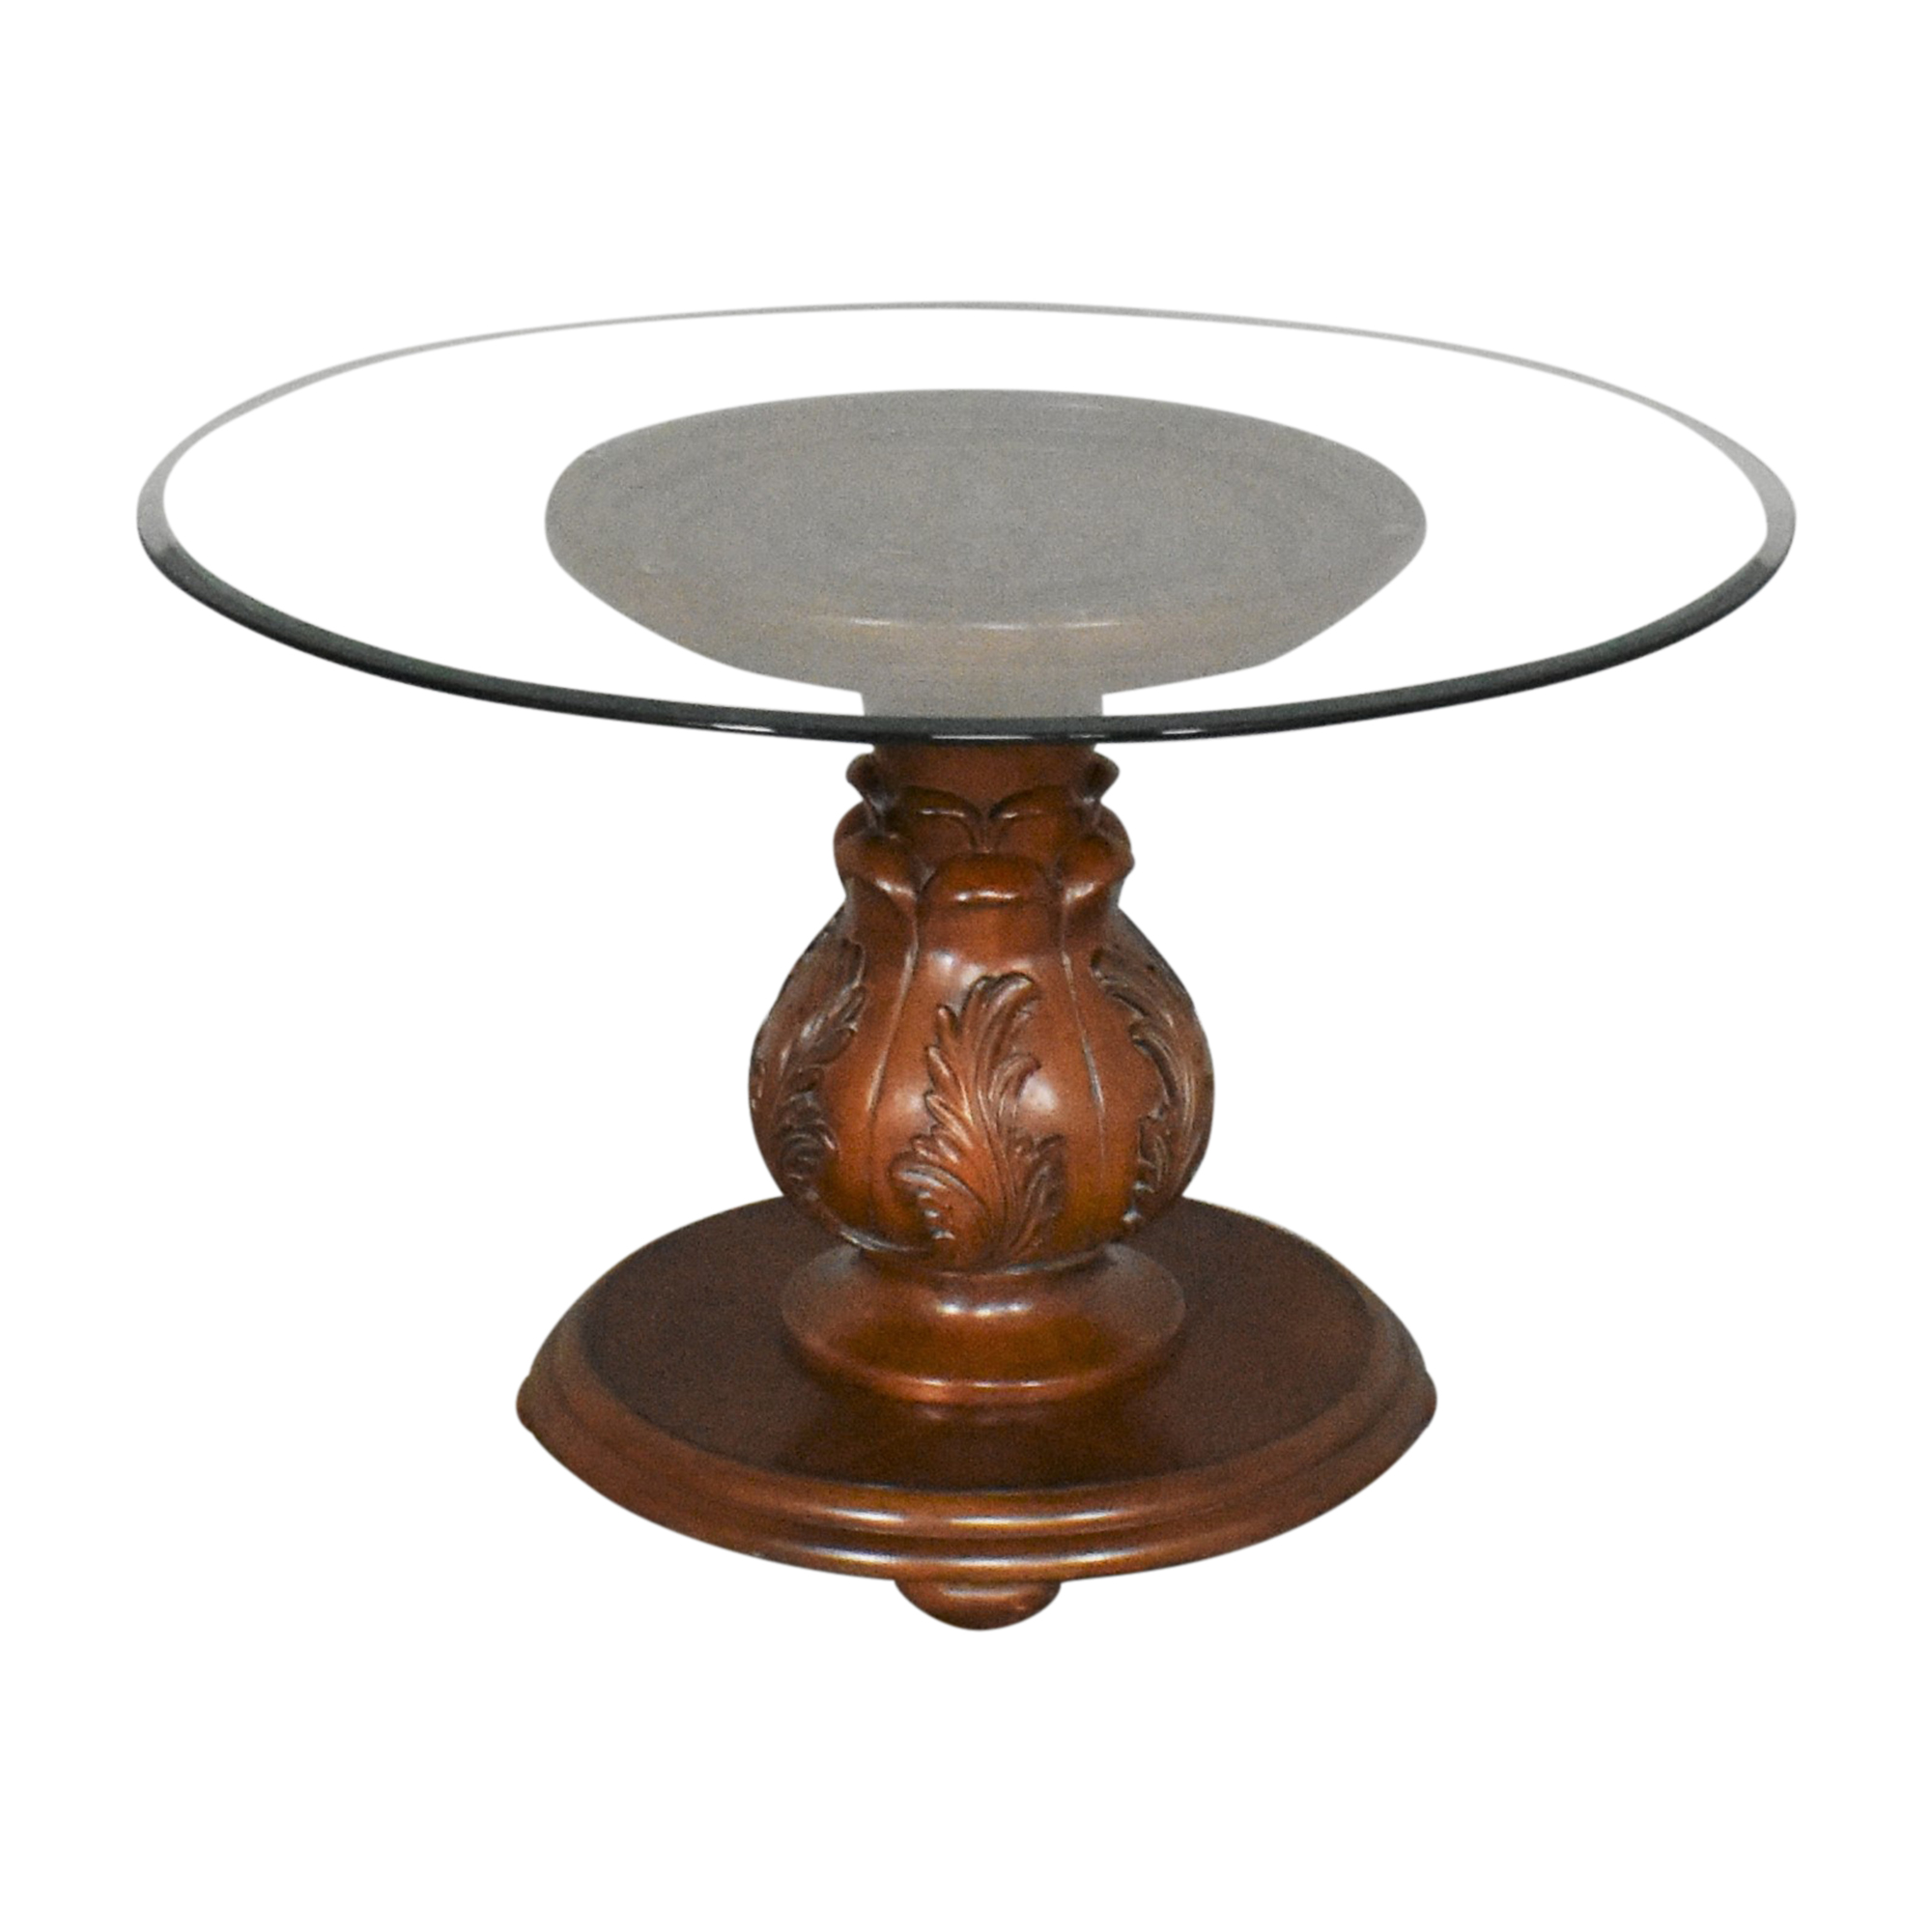 buy Broyhill Furniture Broyhill Furniture Sunset Pointe Pedestal Table online